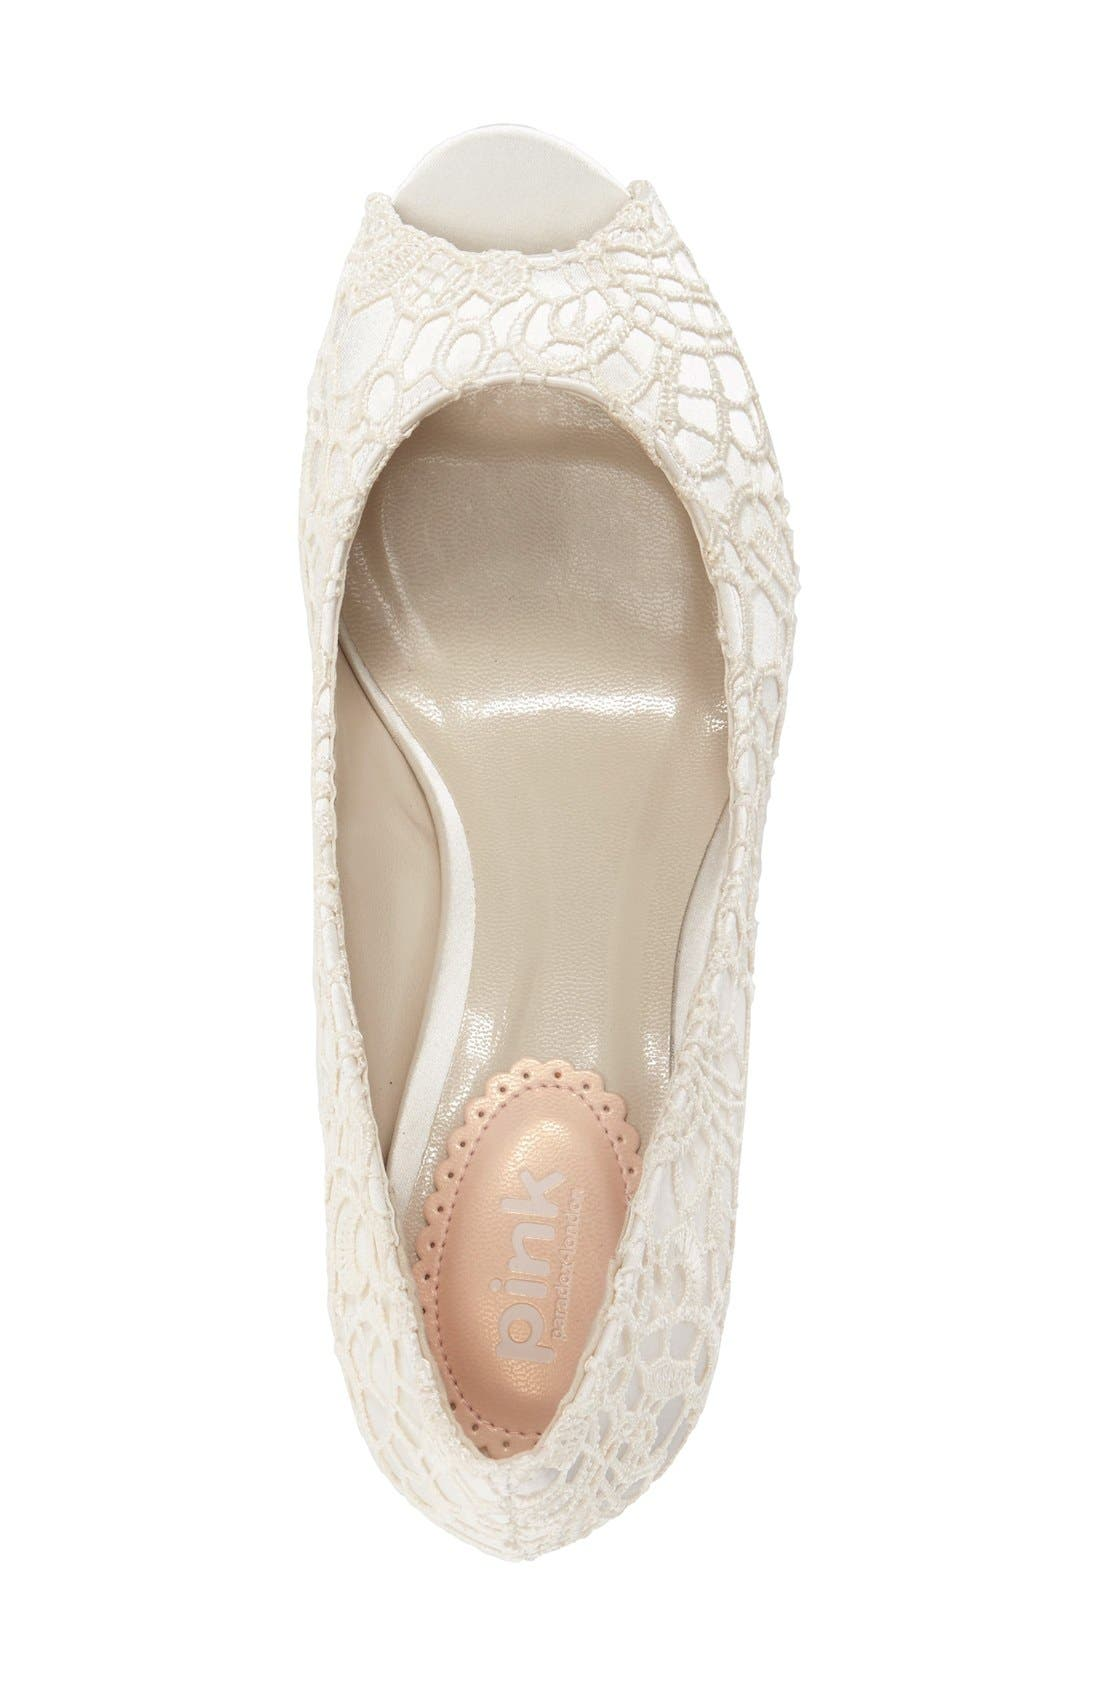 'Emotion' Peep Toe Pump,                             Alternate thumbnail 2, color,                             IVORY